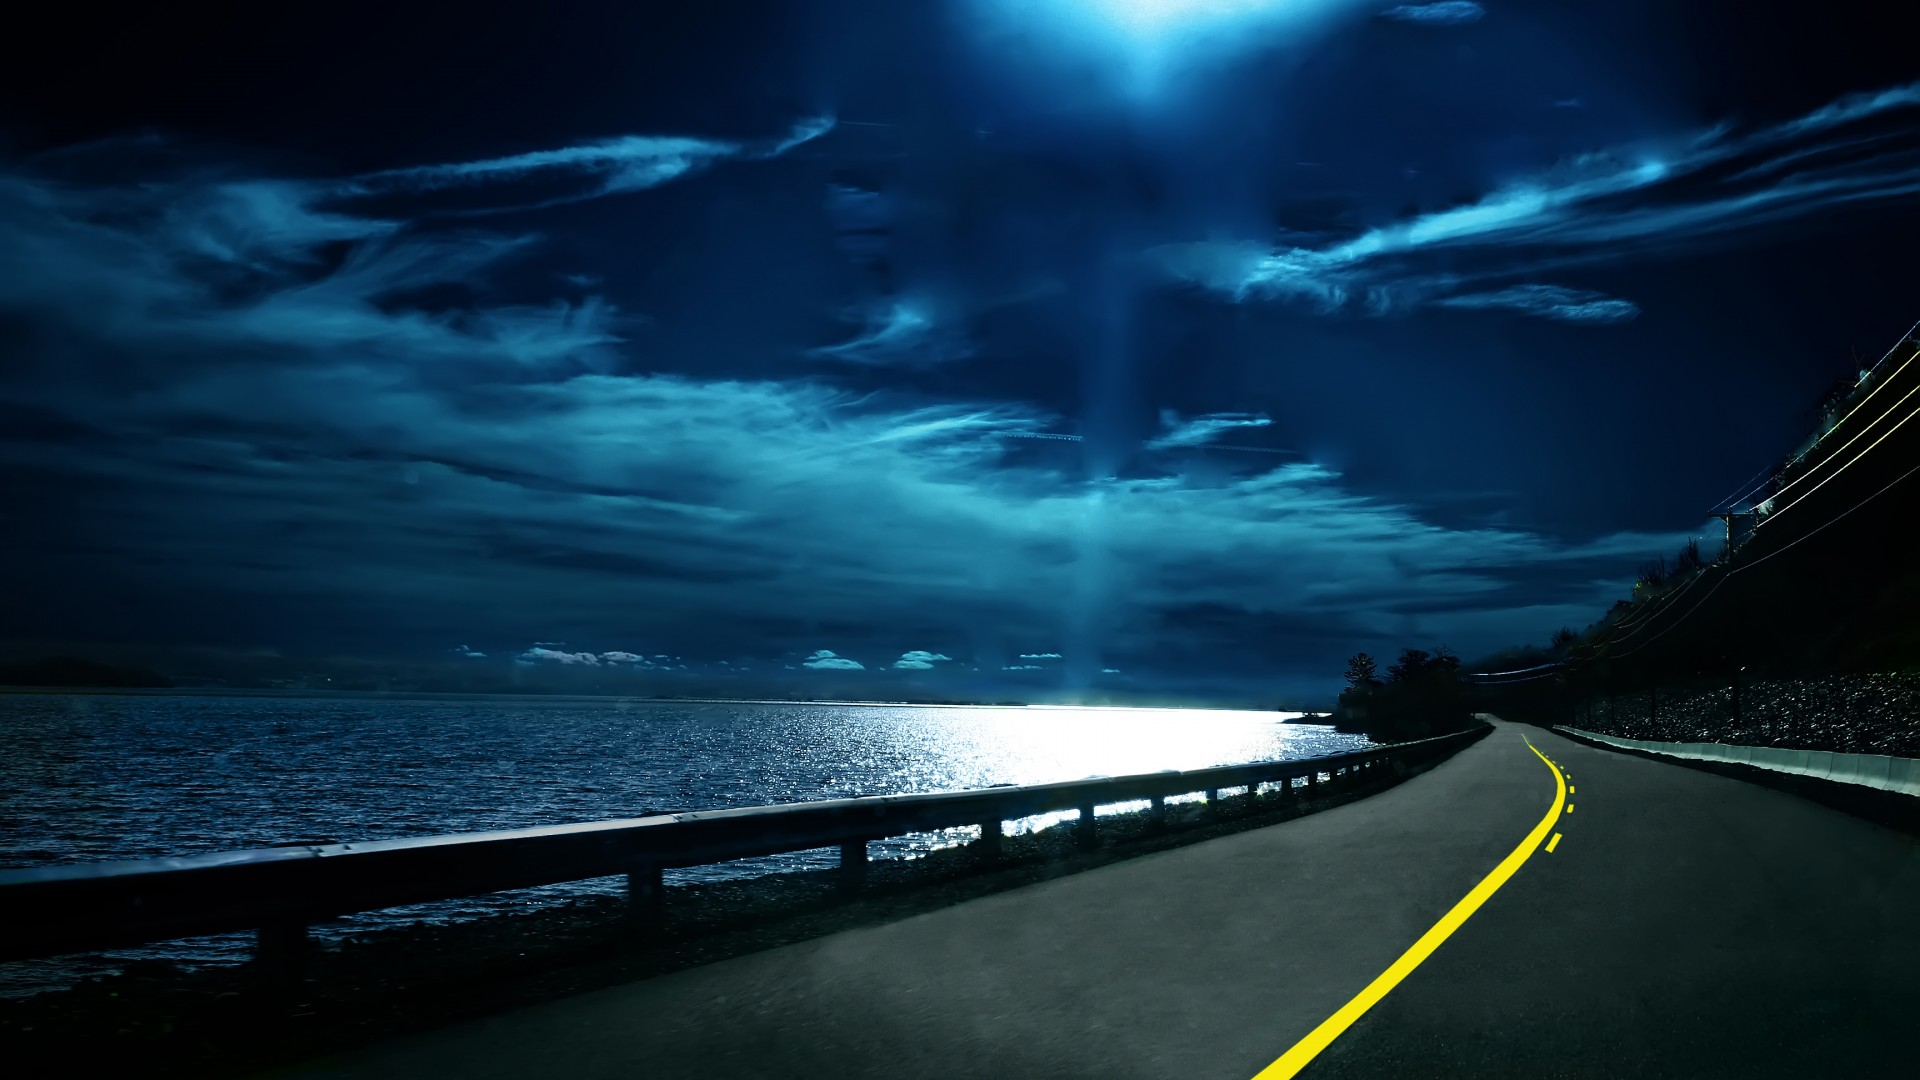 coastal road at night high quality wallpaperswallpaper desktophigh